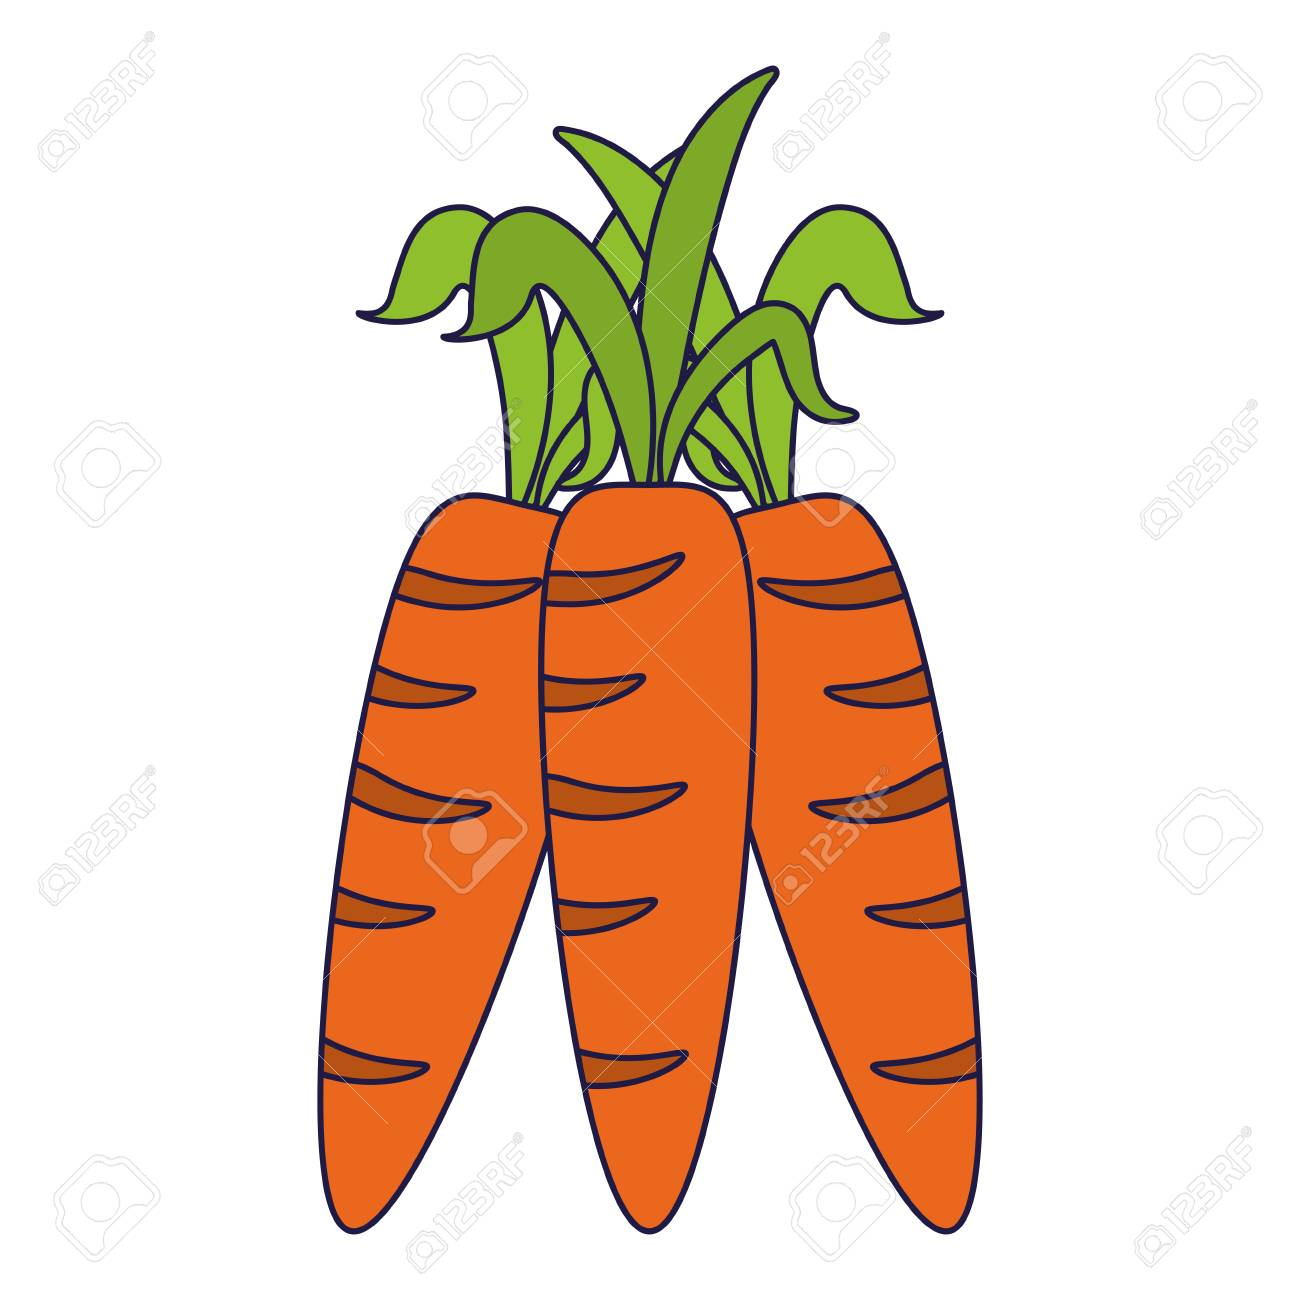 Carrots Vegetables Fruit Cartoon Vector Illustration Graphic Royalty Free Cliparts Vectors And Stock Illustration Image 124960417